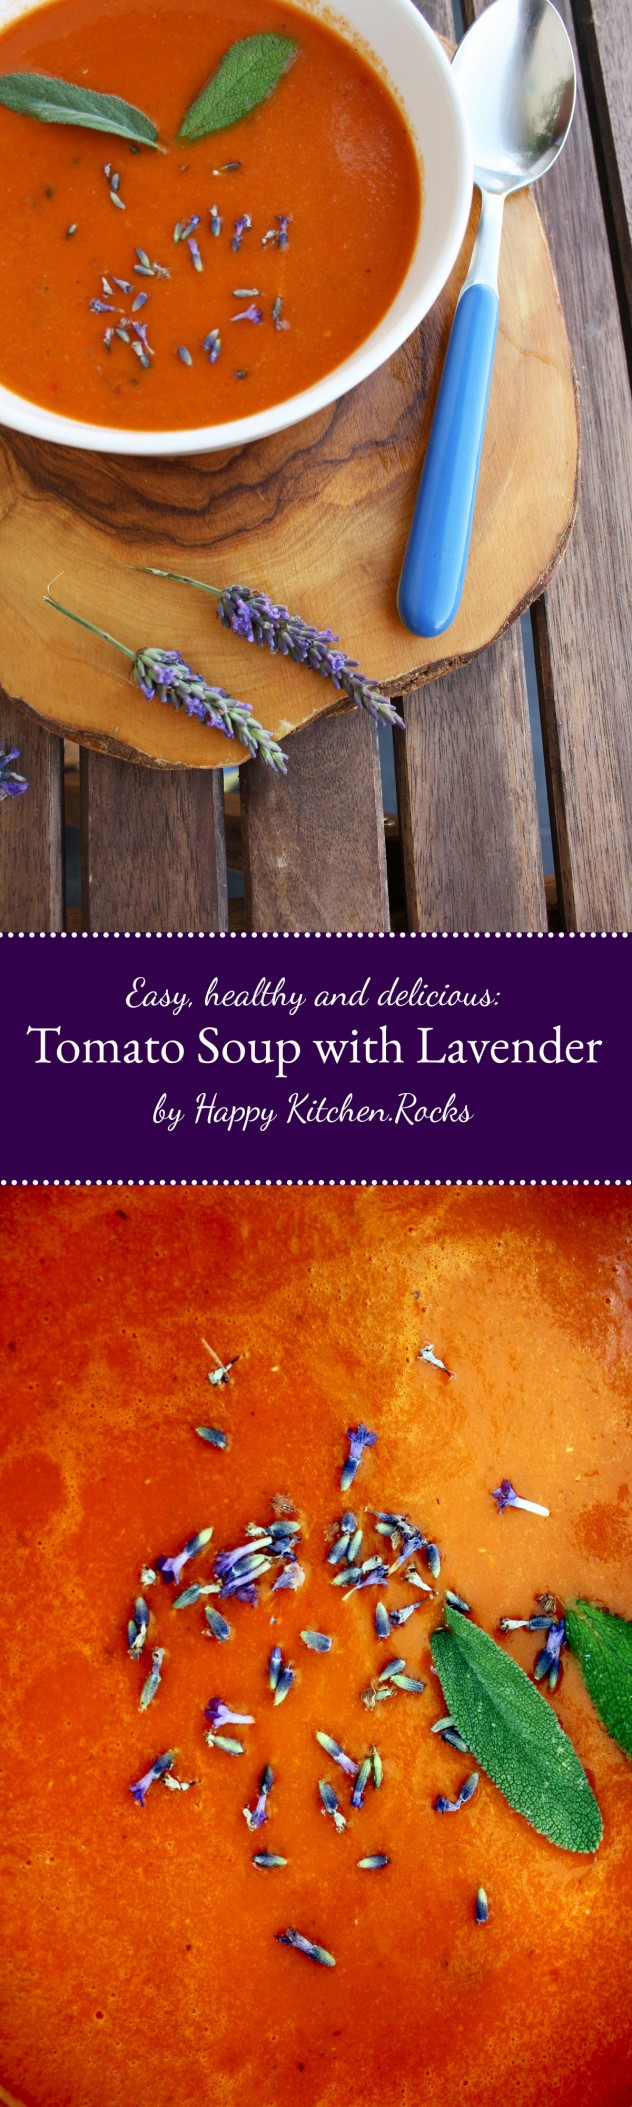 Try this aromatic and healthy tomato soup recipe. Lavender and sage give it an unforgettable flavor. Vegan and easy to make!